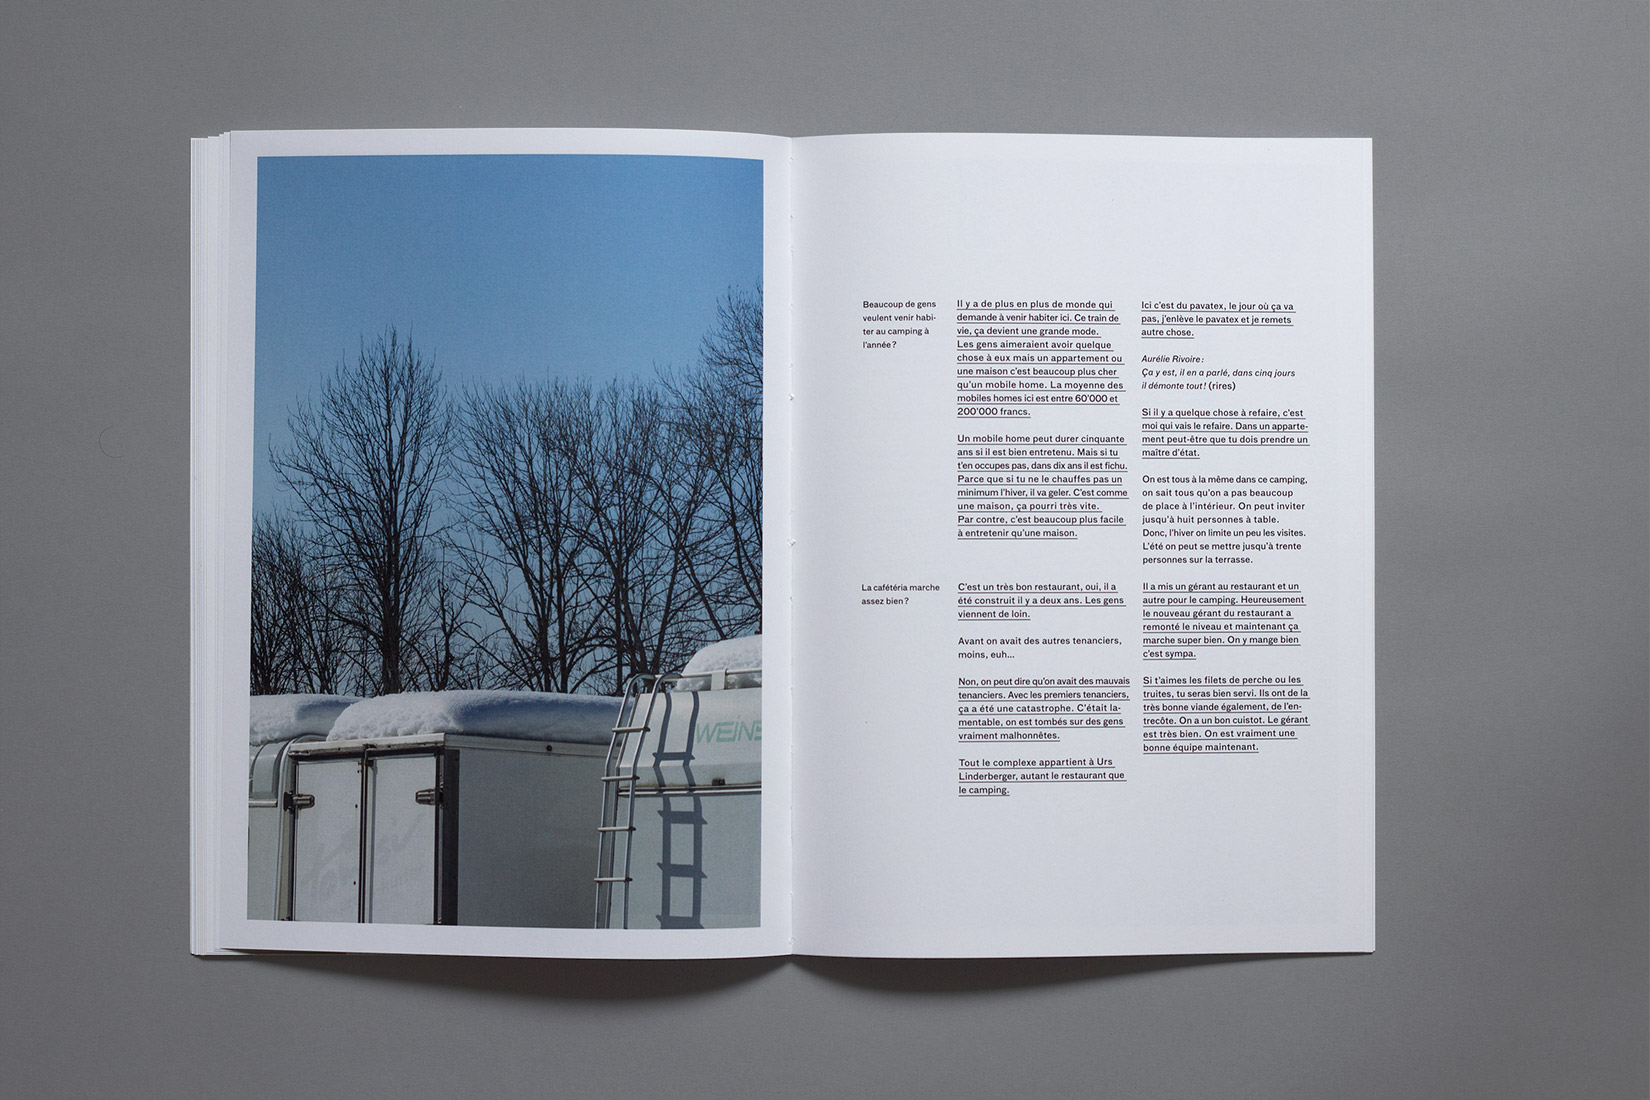 Les Brenets - Camping, caravans roof, interview, book, photography